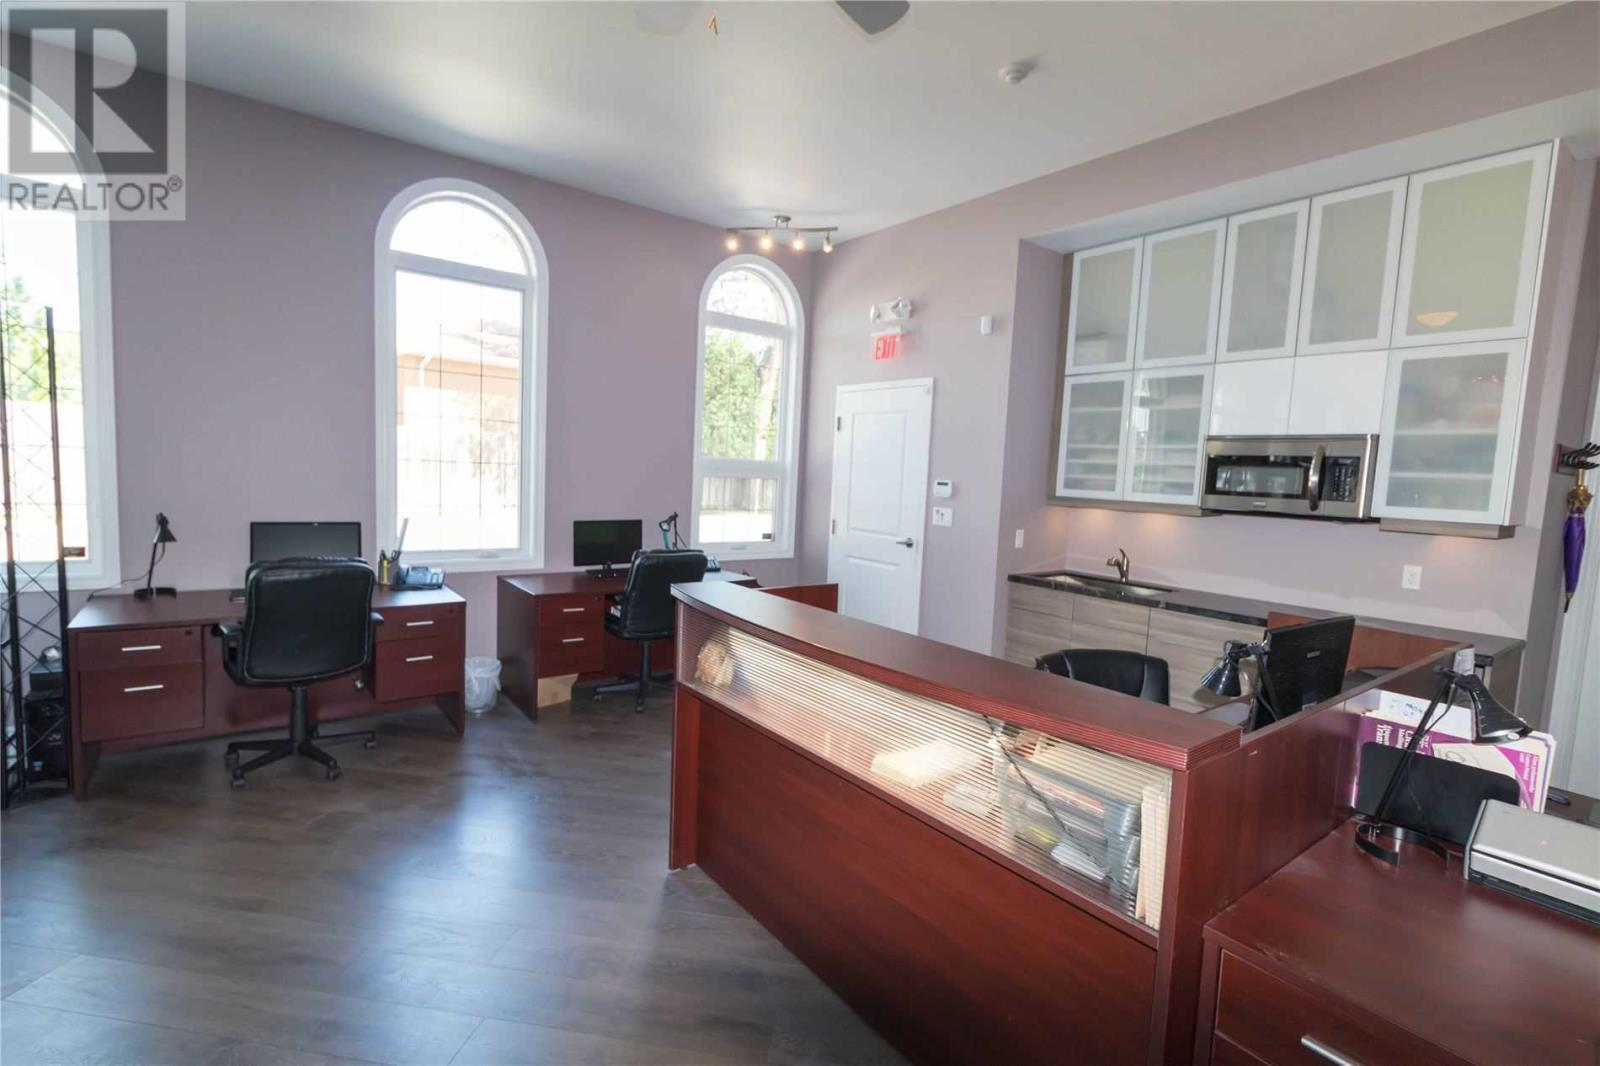 3447 Cawthra Rd, Mississauga, Ontario  L5A 2X9 - Photo 12 - W4675241